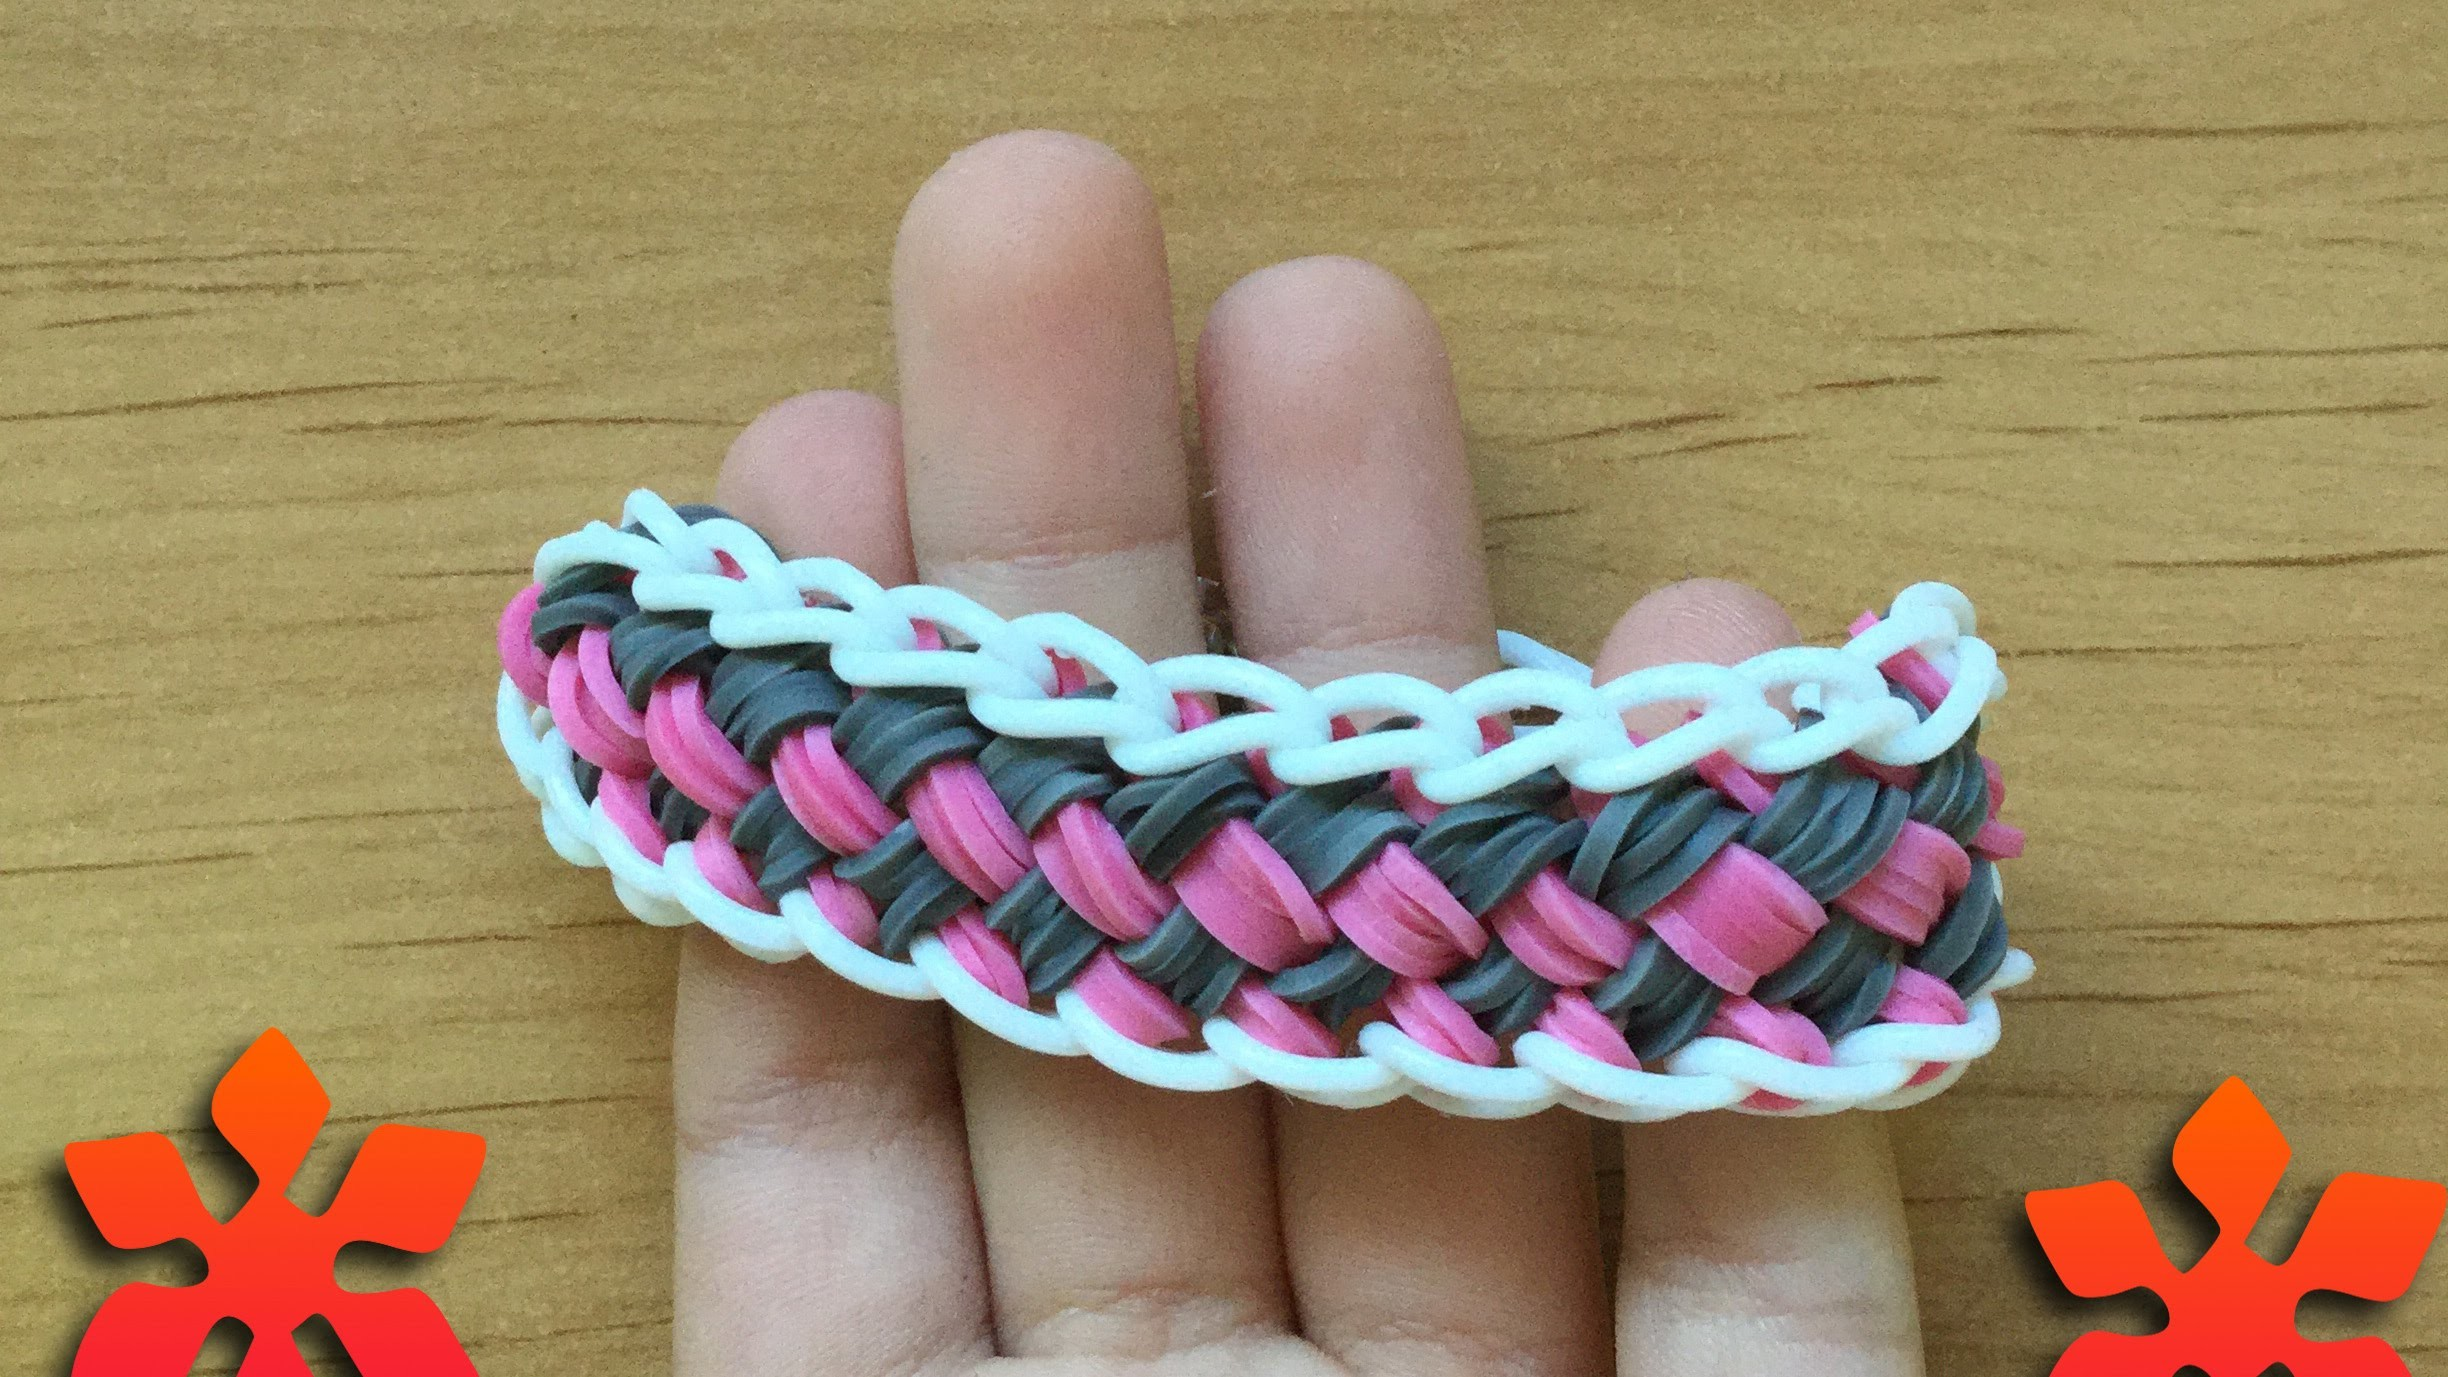 Chinese Finger Trap Bracelet (Rainbow Loom) Tutorial | Loom Bands, Loom Bracelets